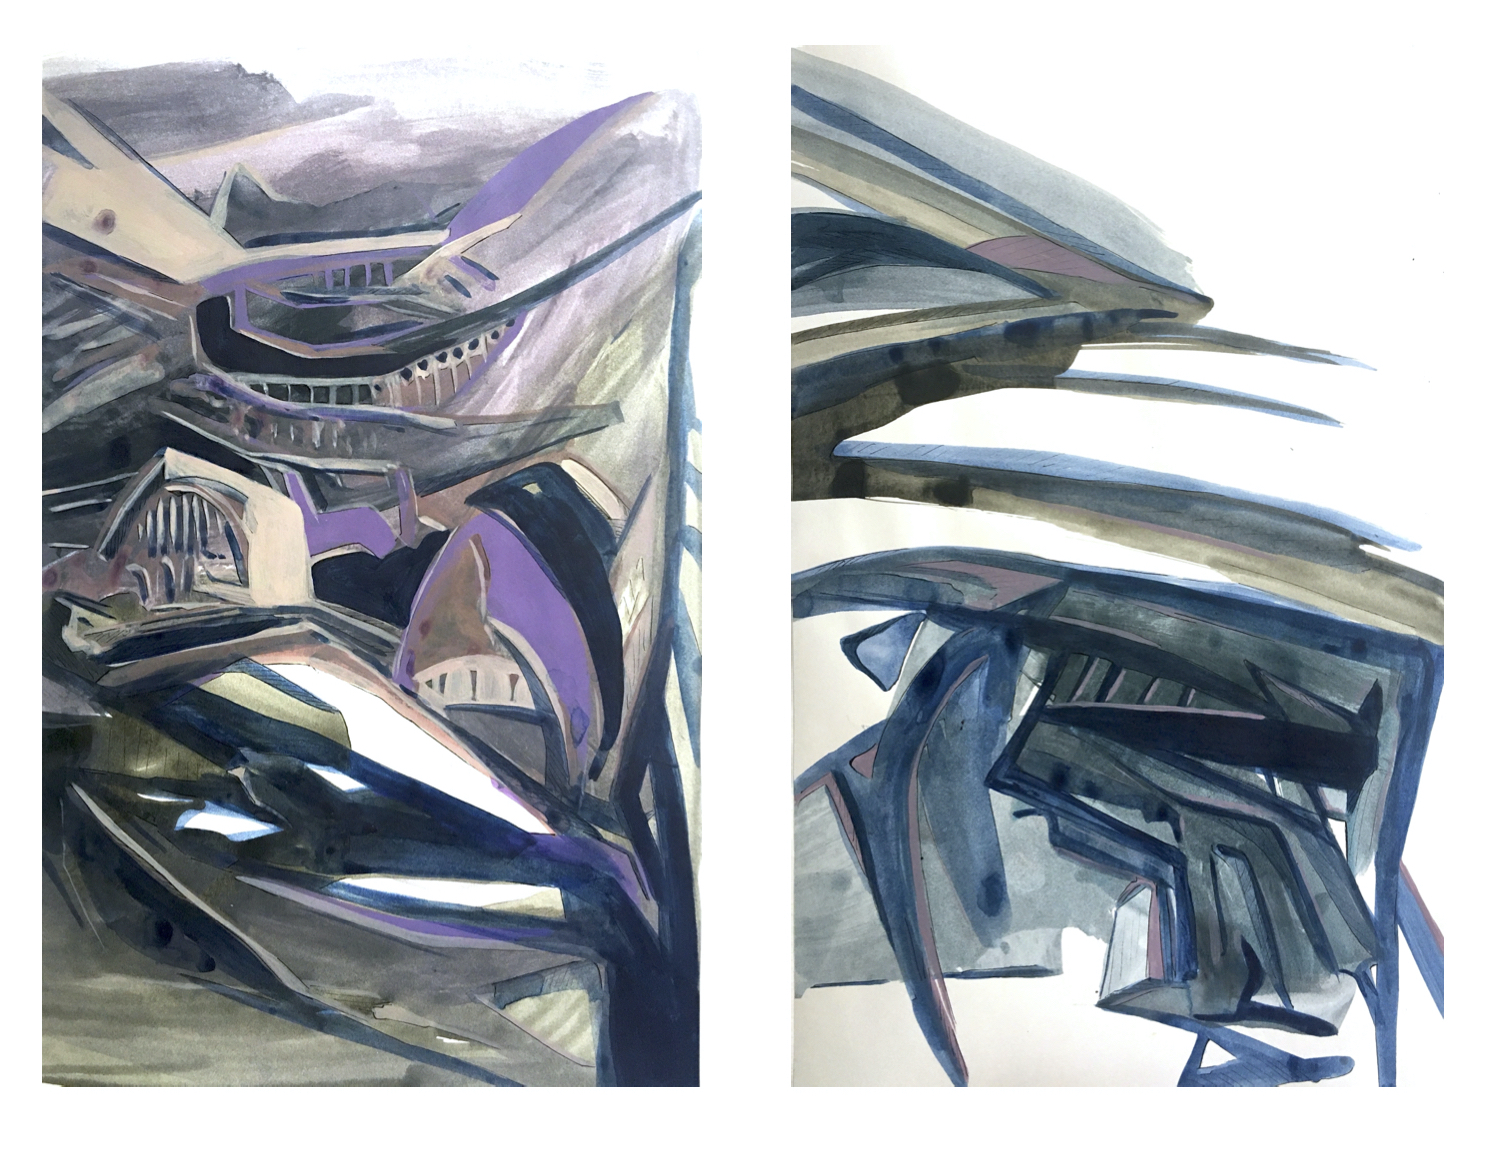 Futuristic Cities, acrylic on paper, 22x14 inches each, 2020